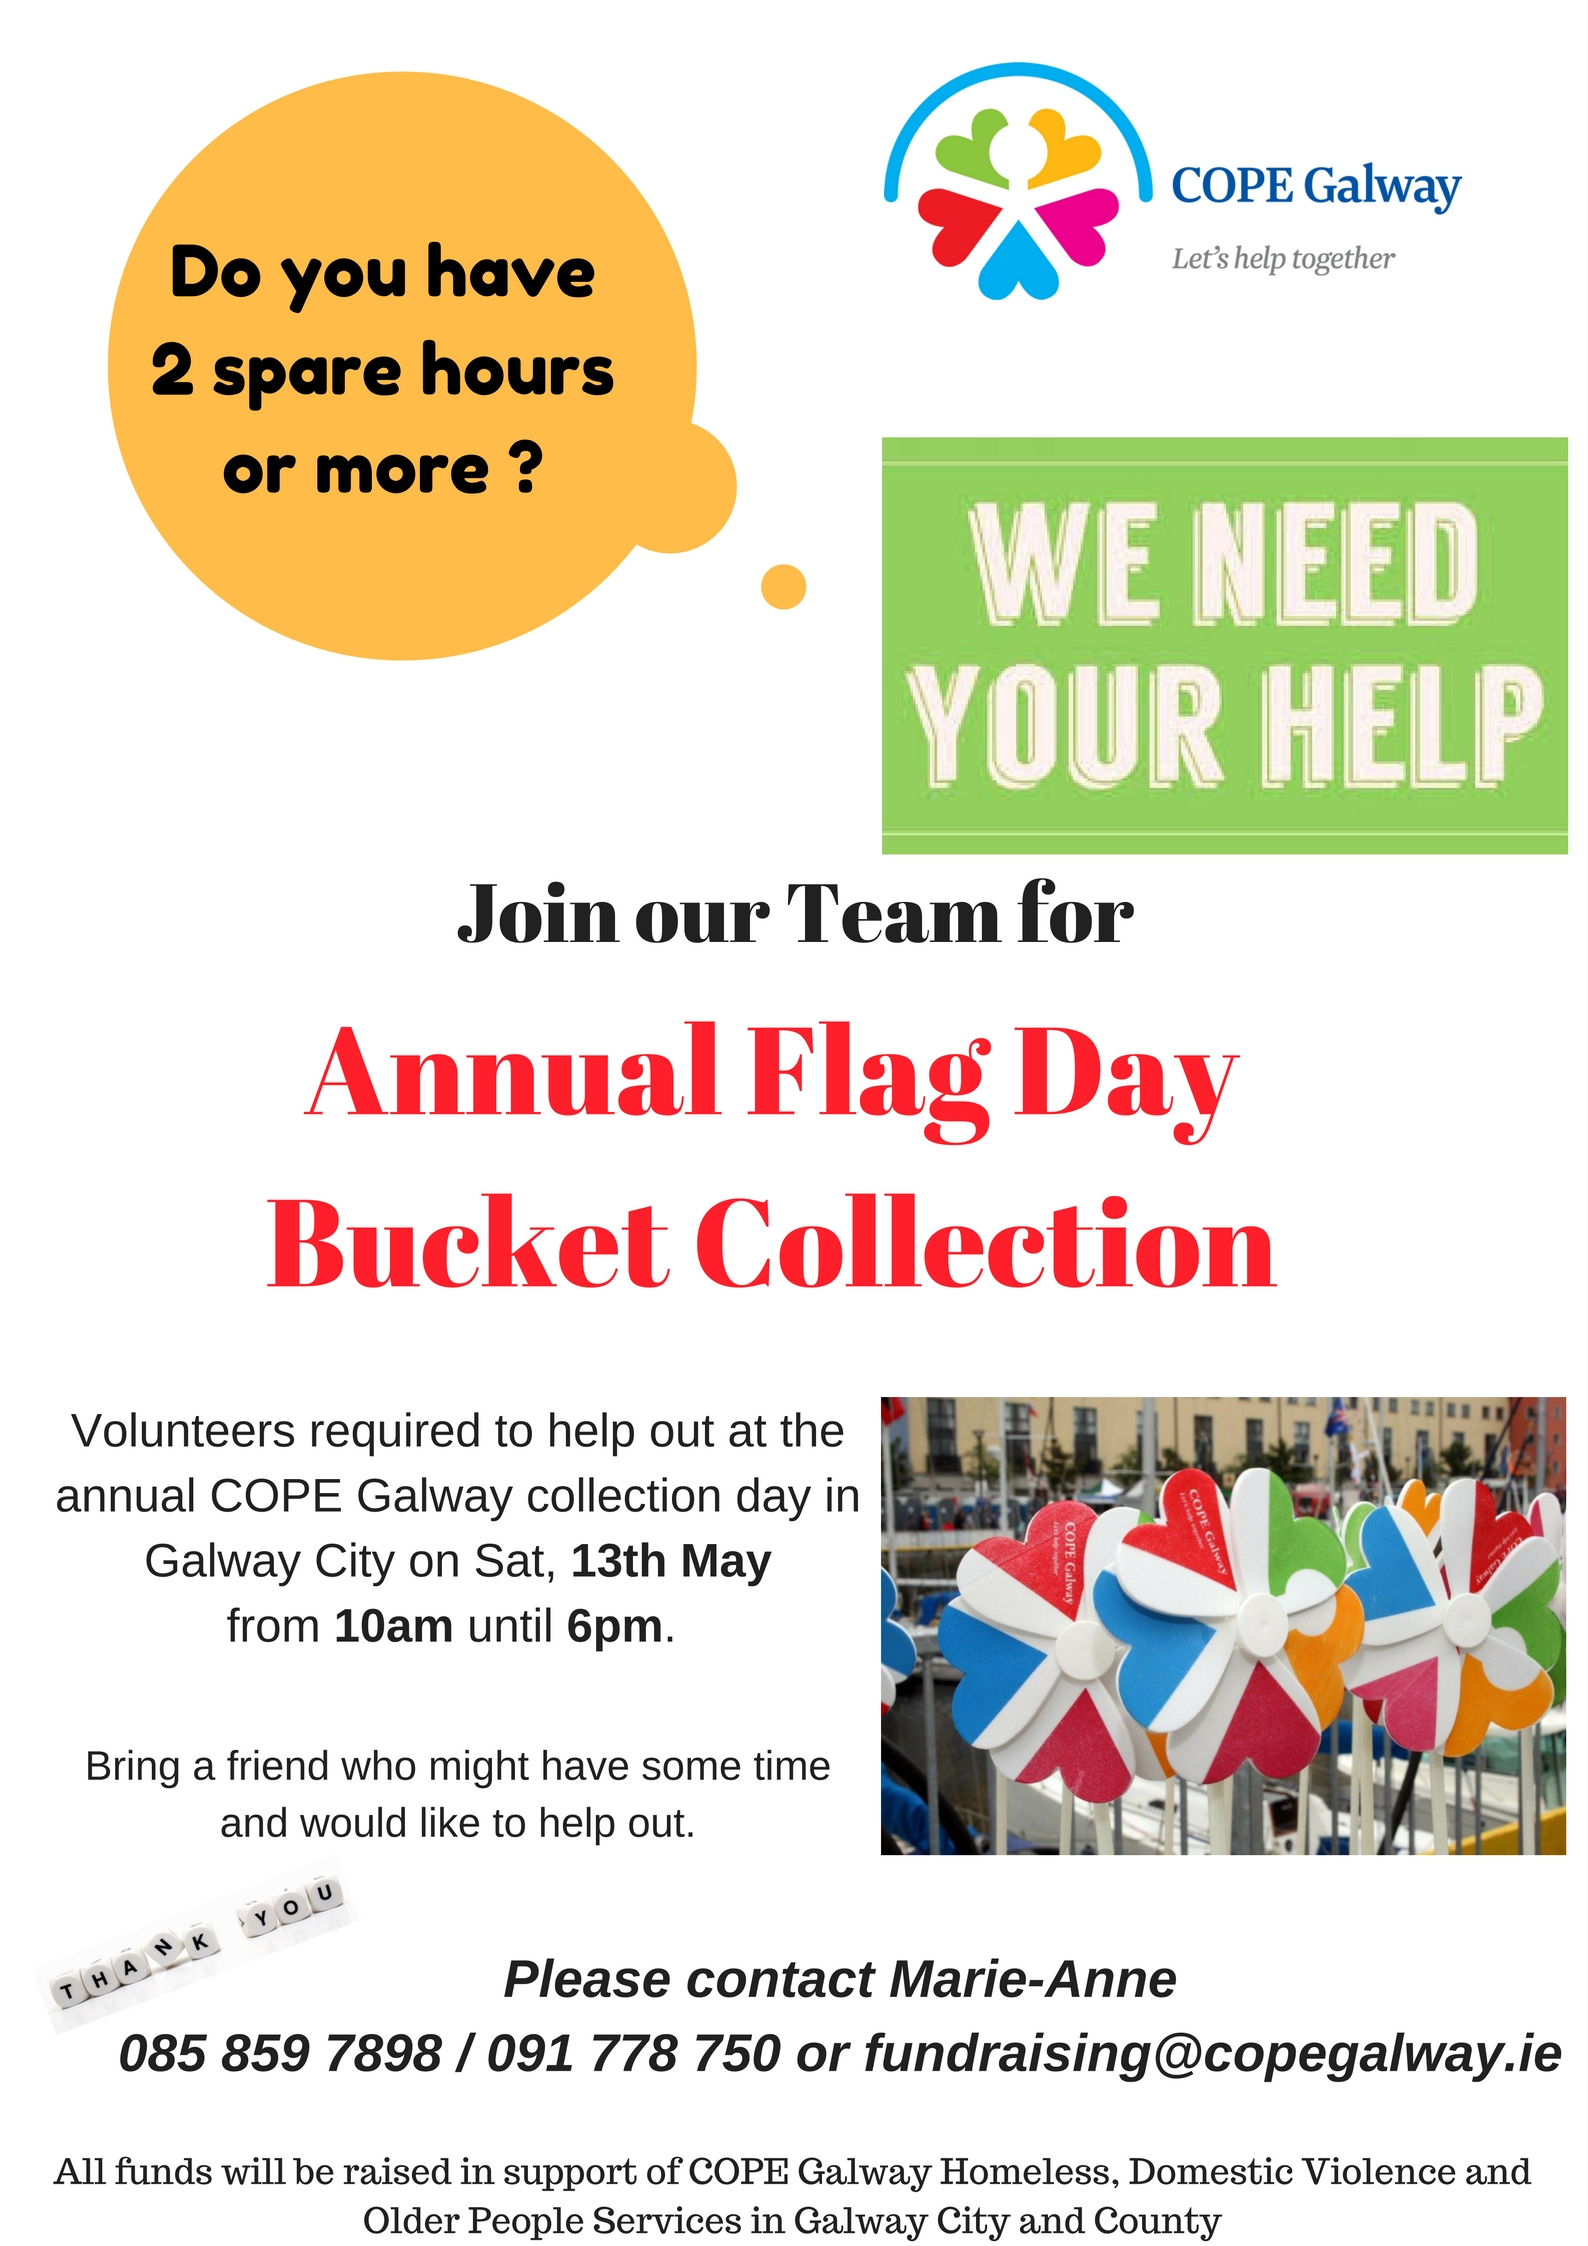 Annual Flag Day in aid of COPE Galway